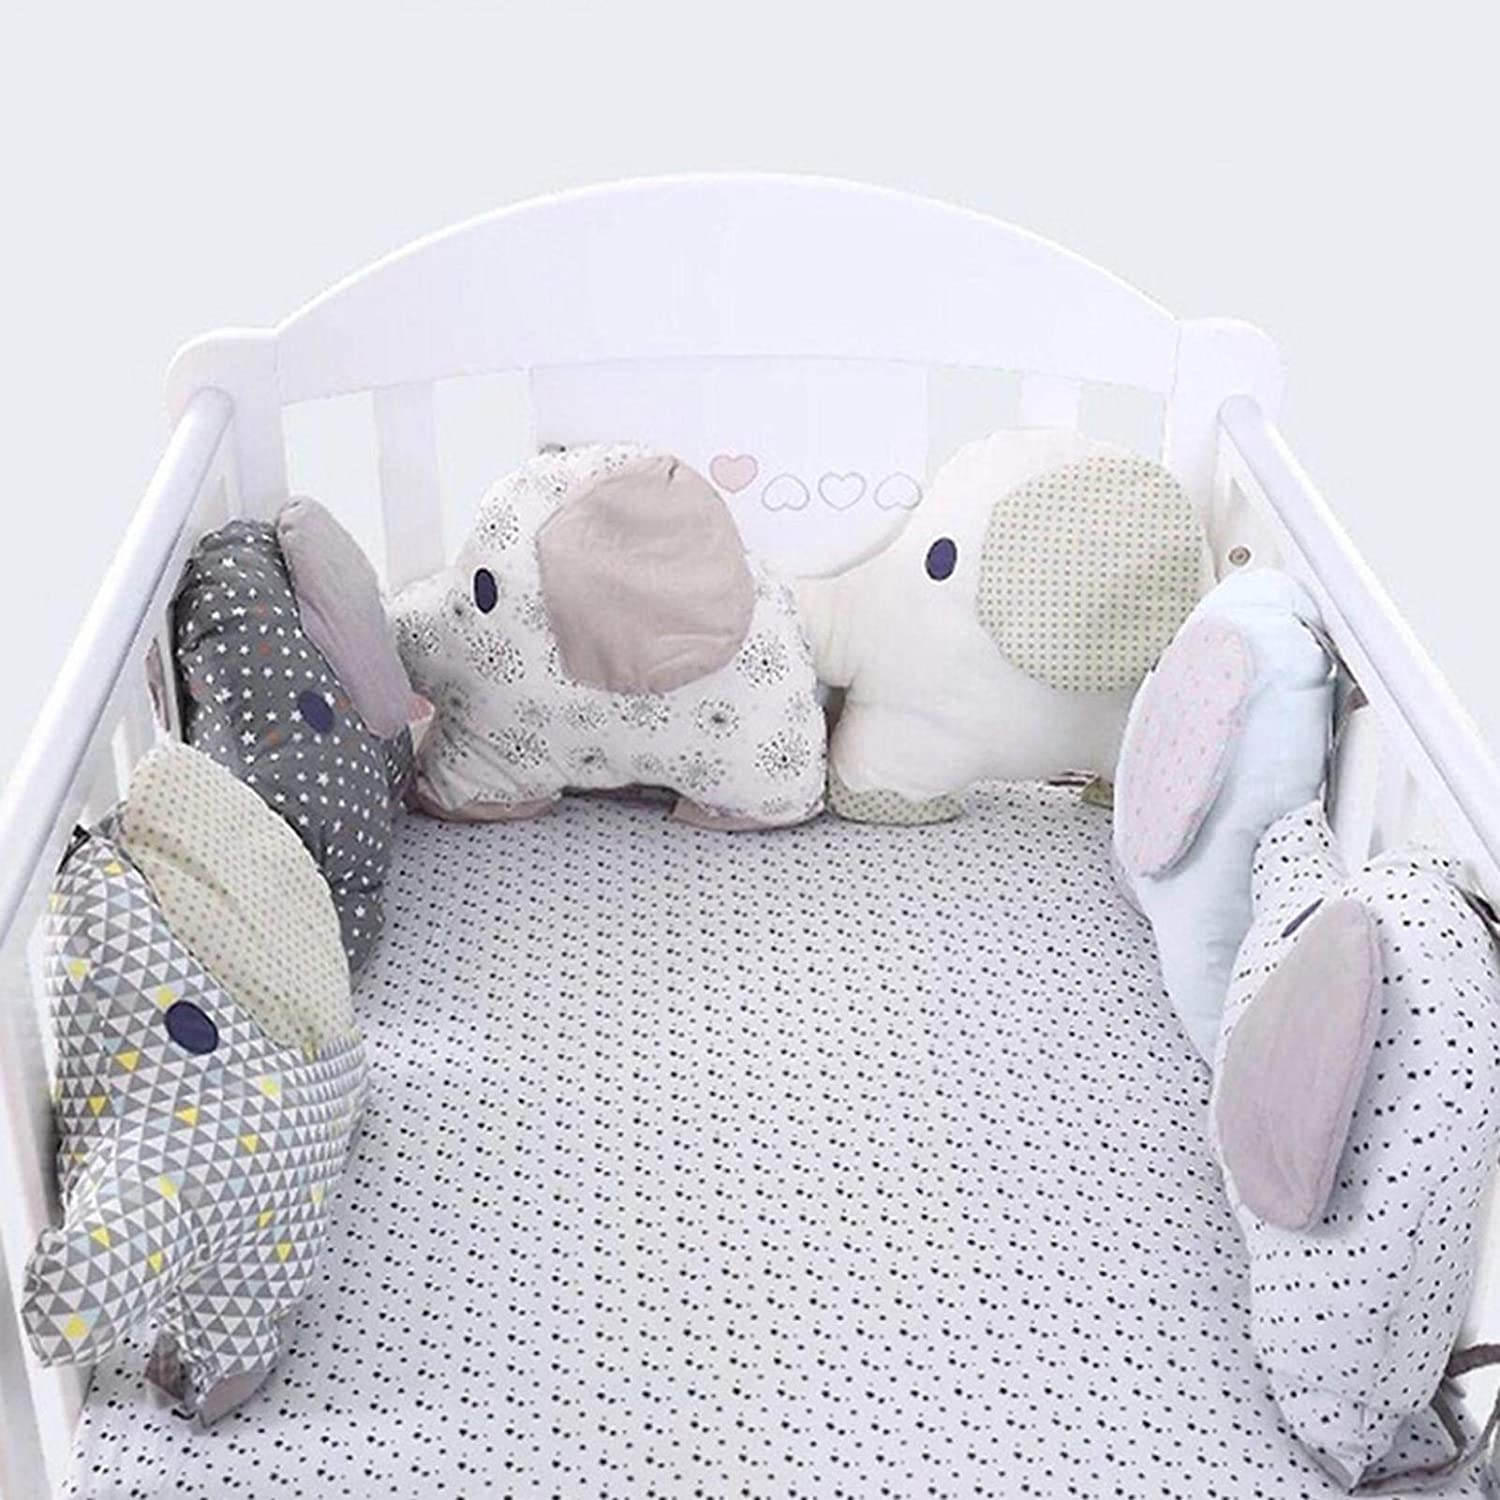 Leiyini Baby Crib Bumper Comfort Junior Bed Sleep Bumper Nursery Cradle Bumper Cradle Decor Newborn Gift